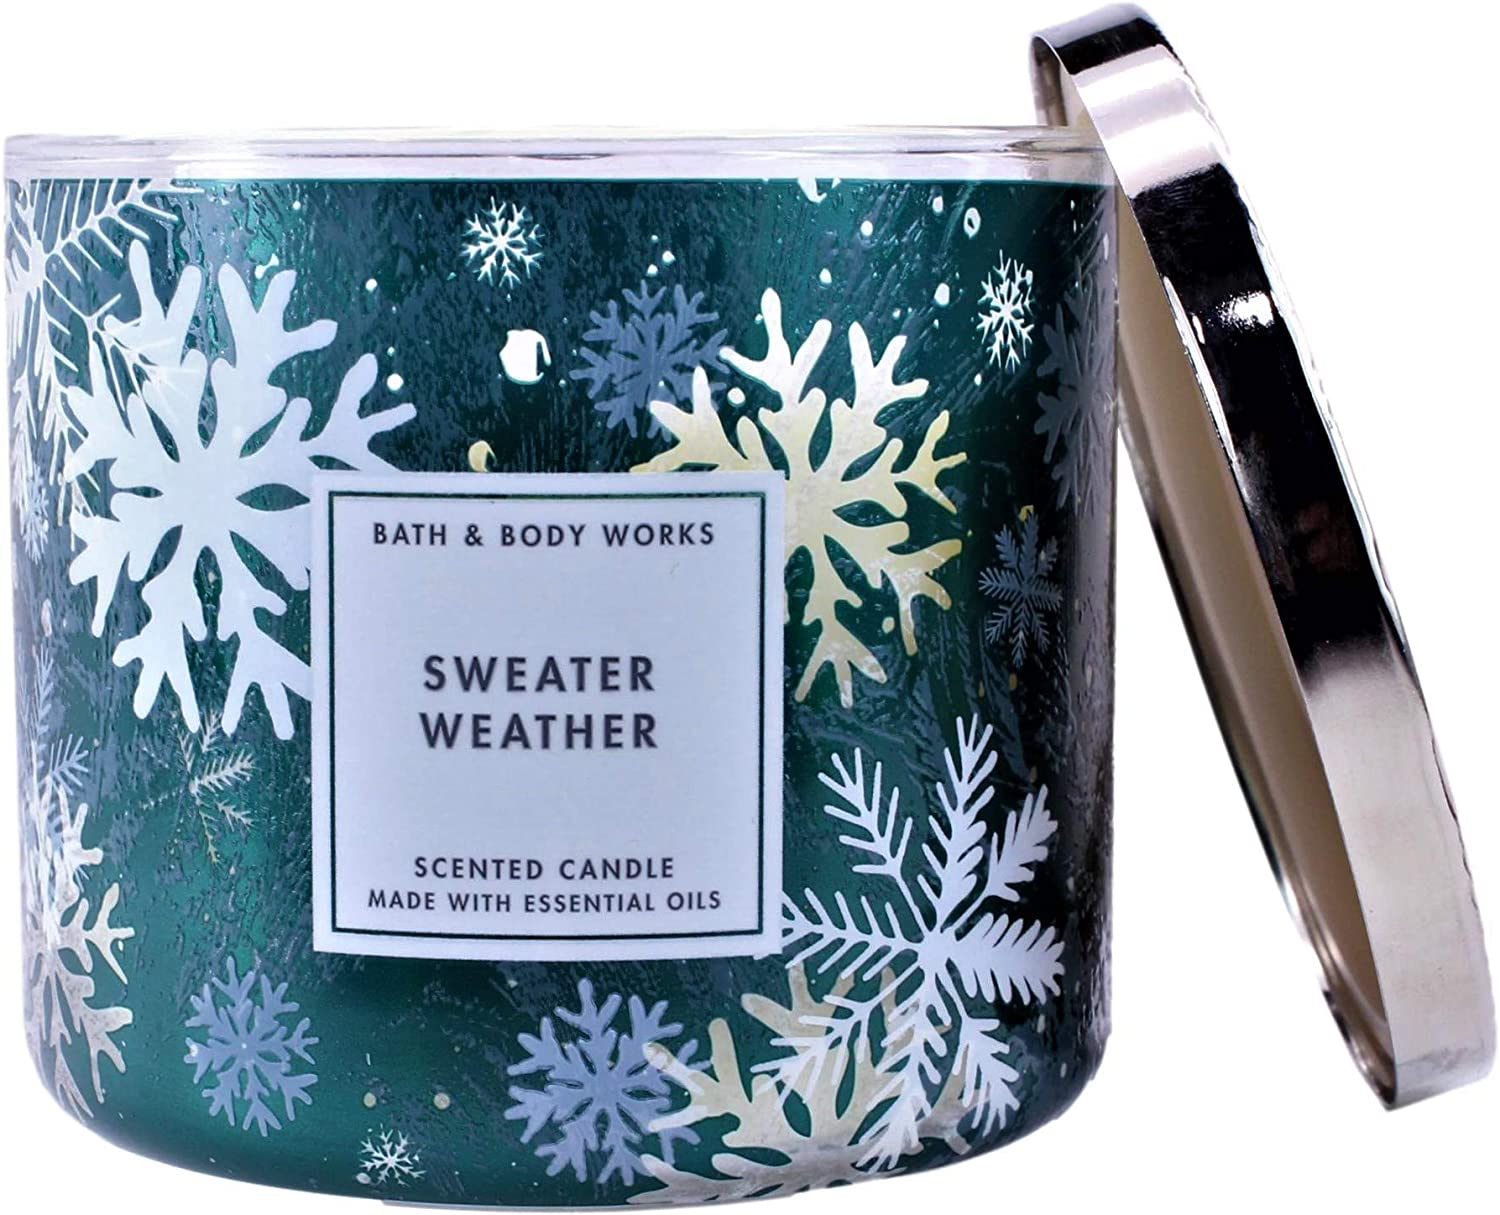 White Barn Bath & Body Works 3-Wick Scented Illuminating Candle in Sweater Weather (2020)